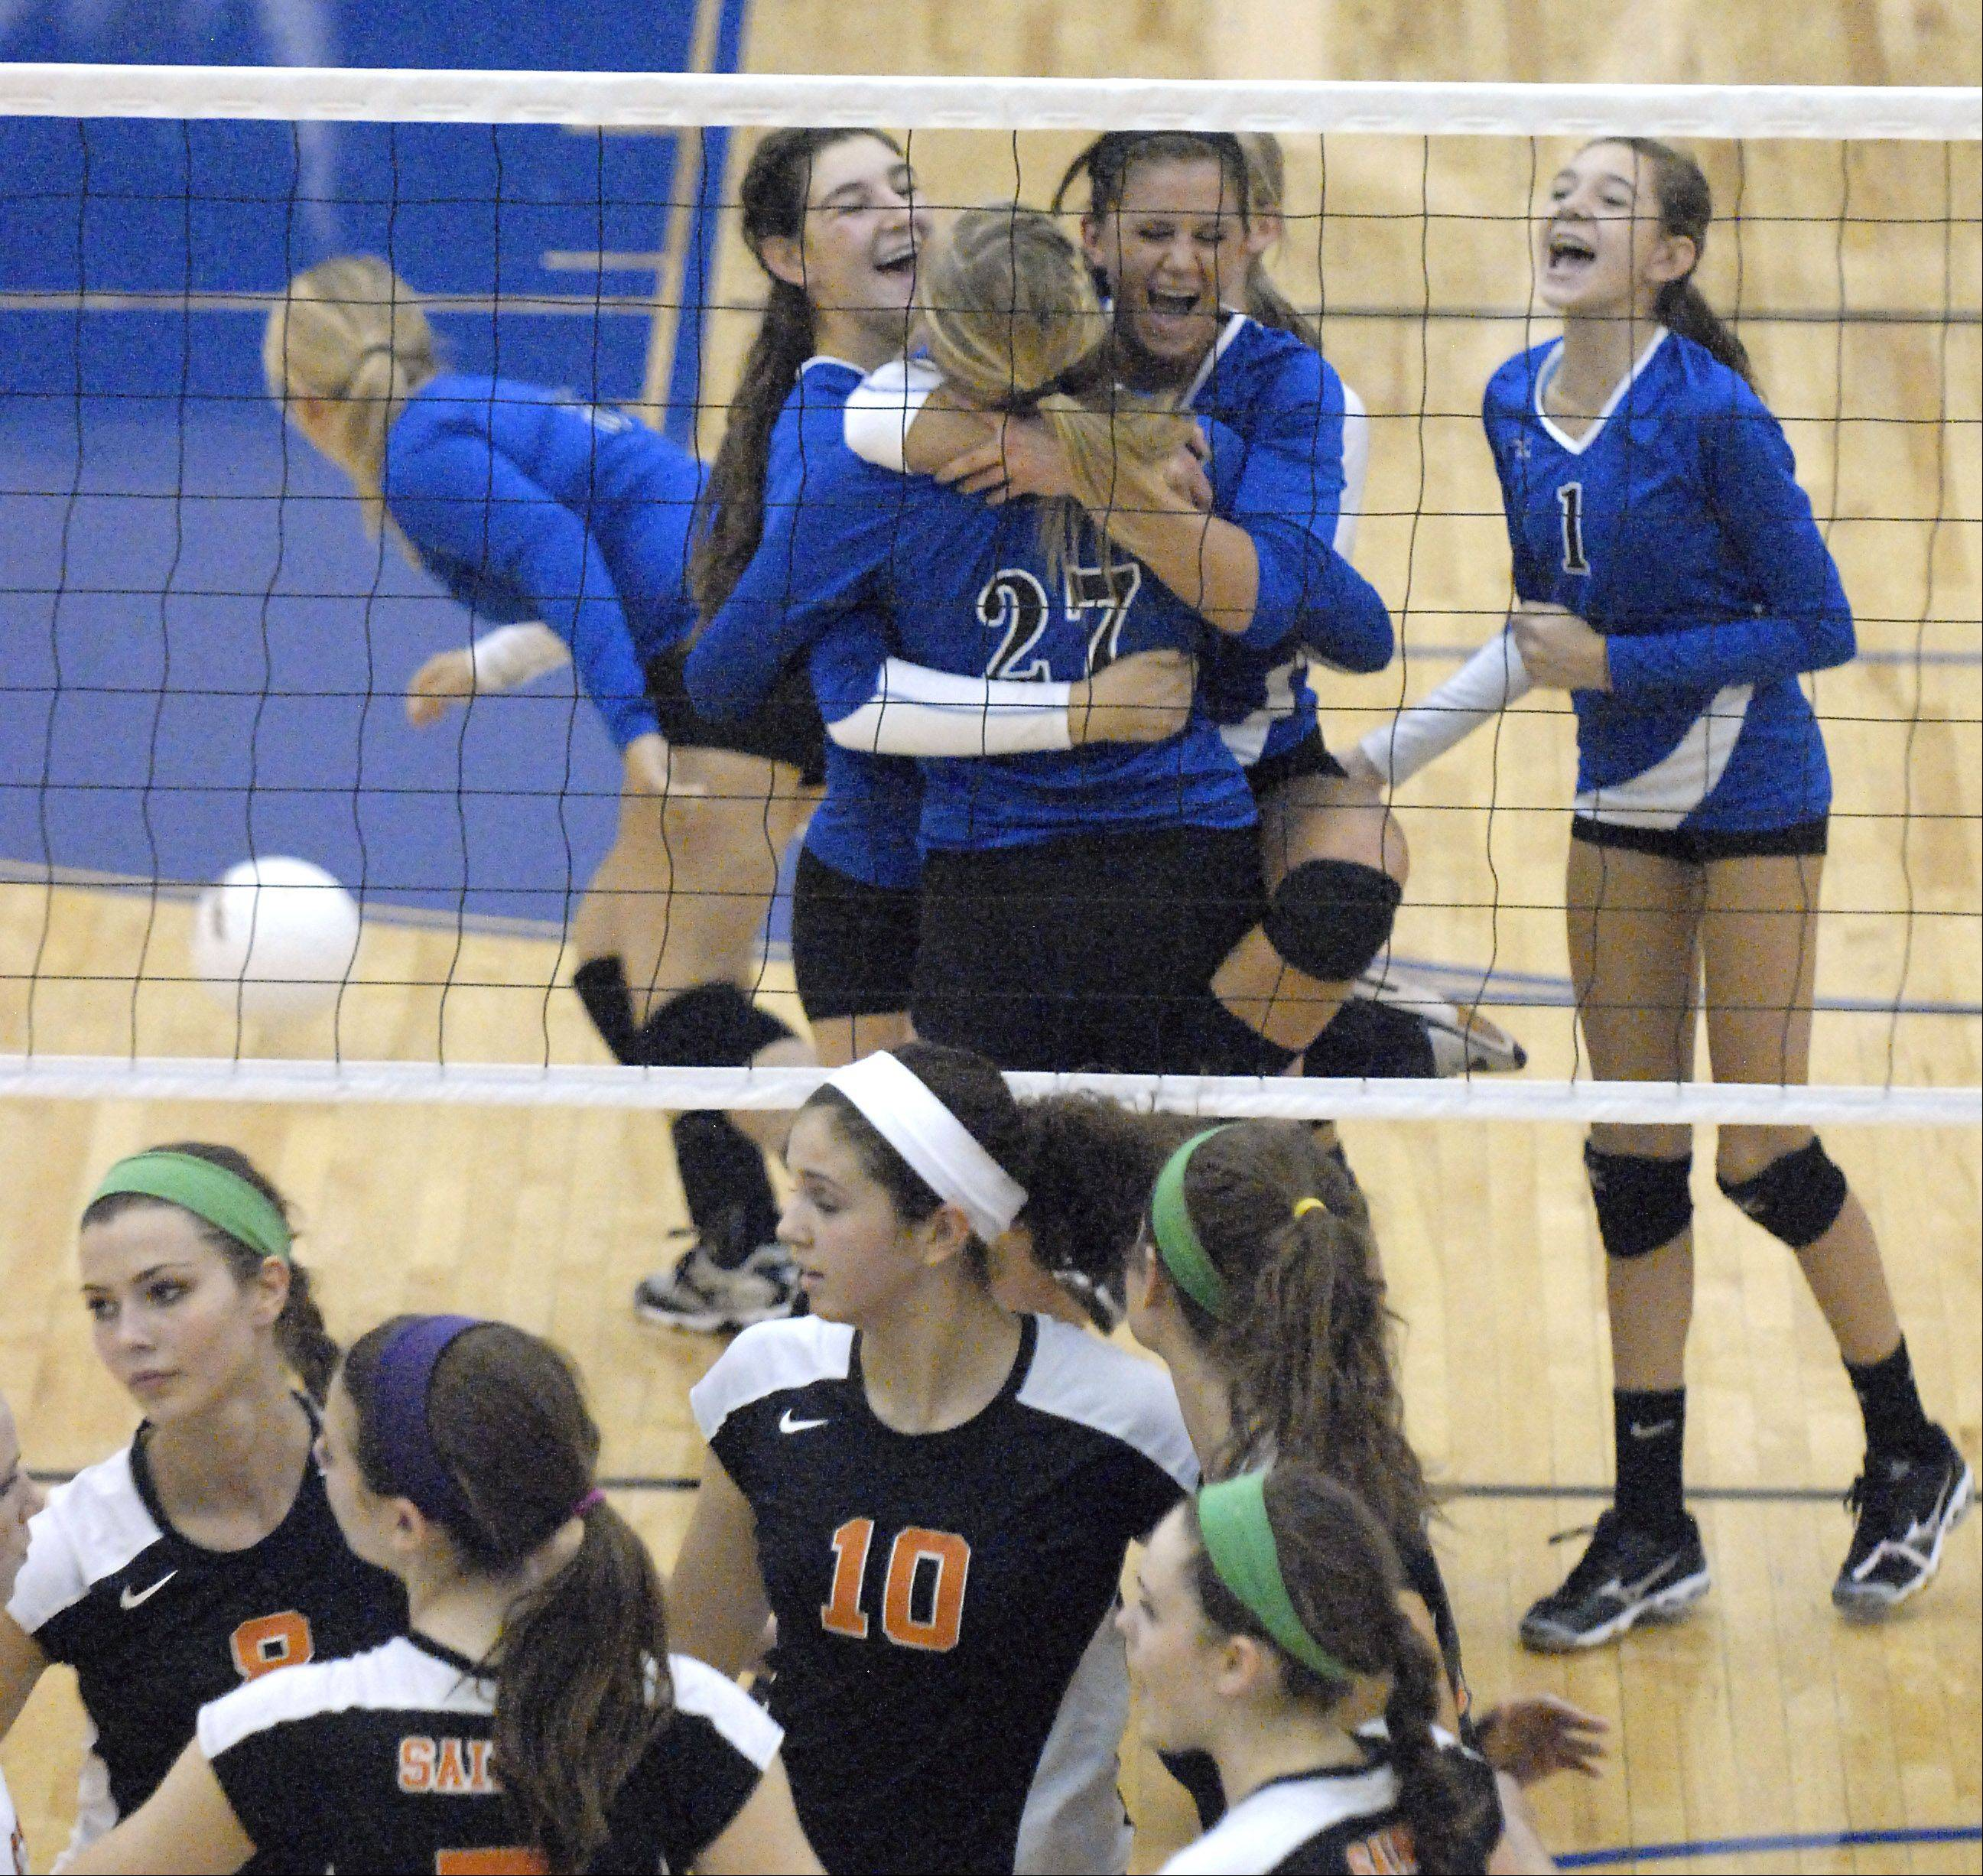 Geneva's Taylor Marmitt (27) is swarmed by teammates Jess Wicinski and Hannah Buck in game one on Tuesday, October 16.